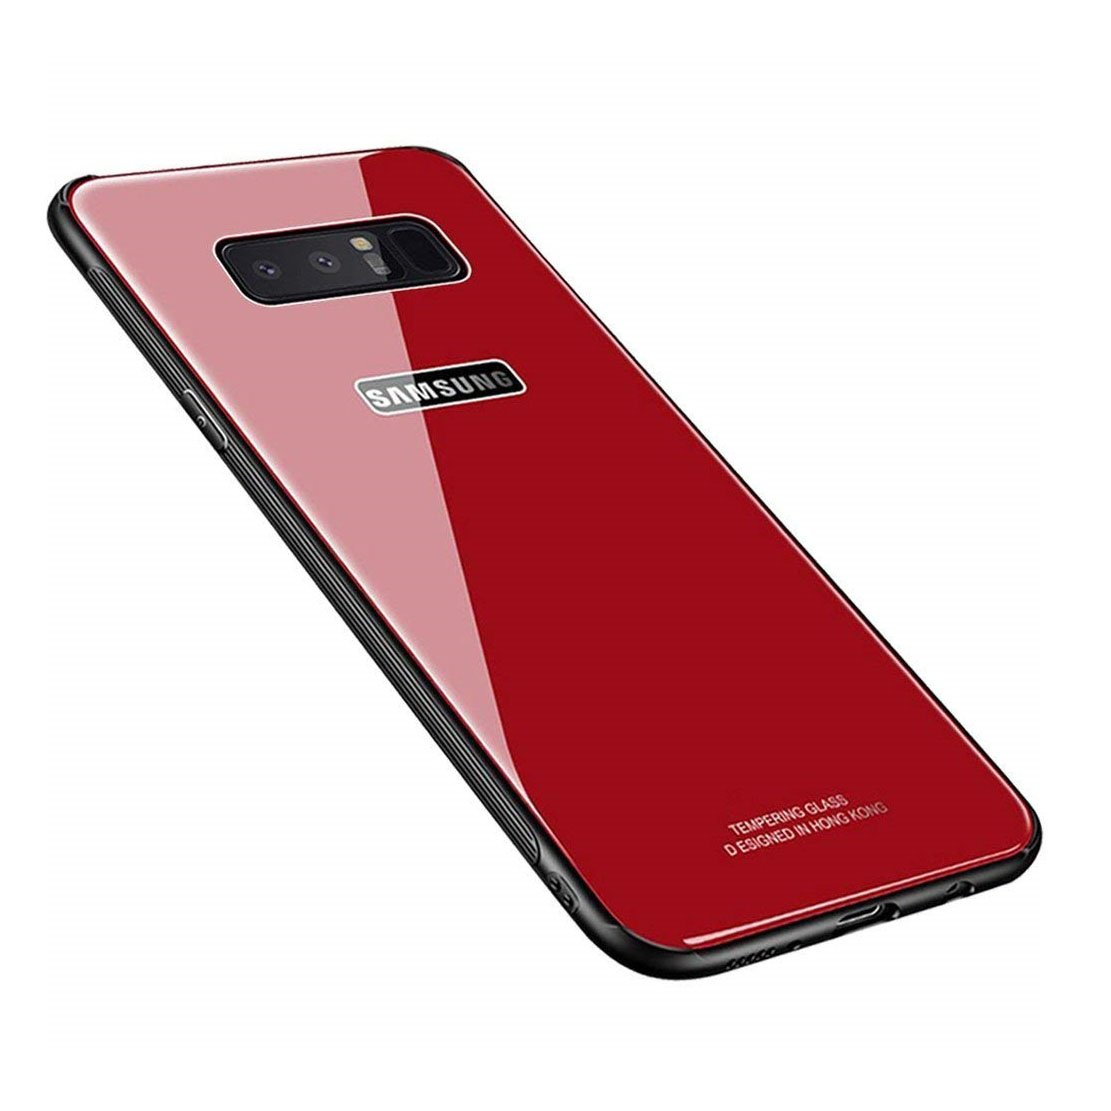 Samsung Galaxy Note 8 Case,Luhuanx Note 8 Glass Case,Tempered Glass Back Cover + TPU Frame Hybrid Shell Slim Case for Note 8,Galaxy Note 8 Red Case, Anti-Scratch Anti-Drop (Red)